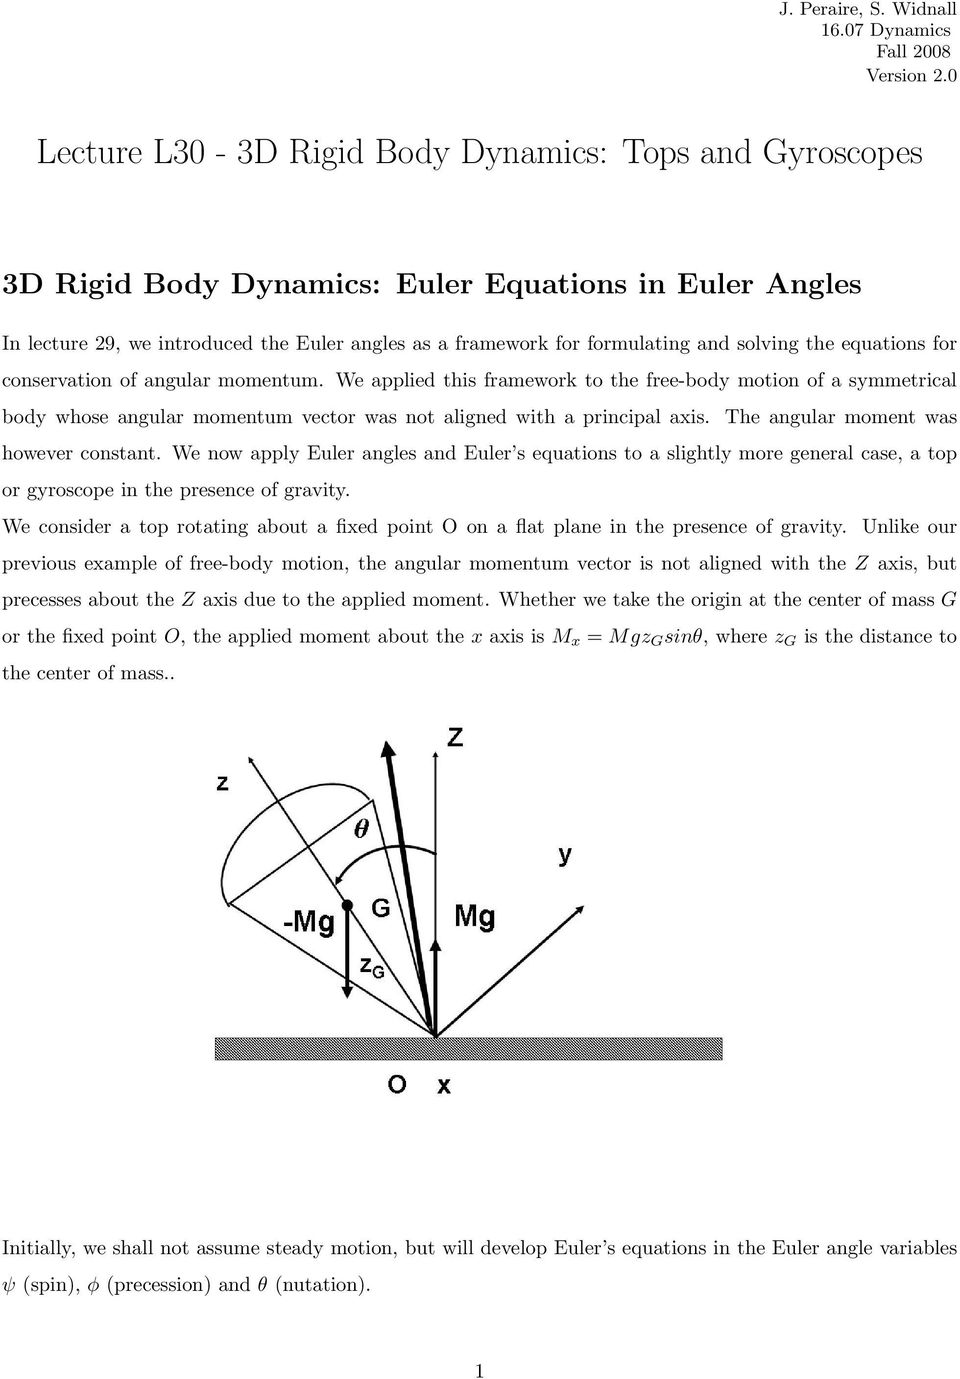 solving the equations for conservation of angular momentum. We applied this framework to the free-body motion of a symmetrical body whose angular momentum vector was not aligned with a principal axis.